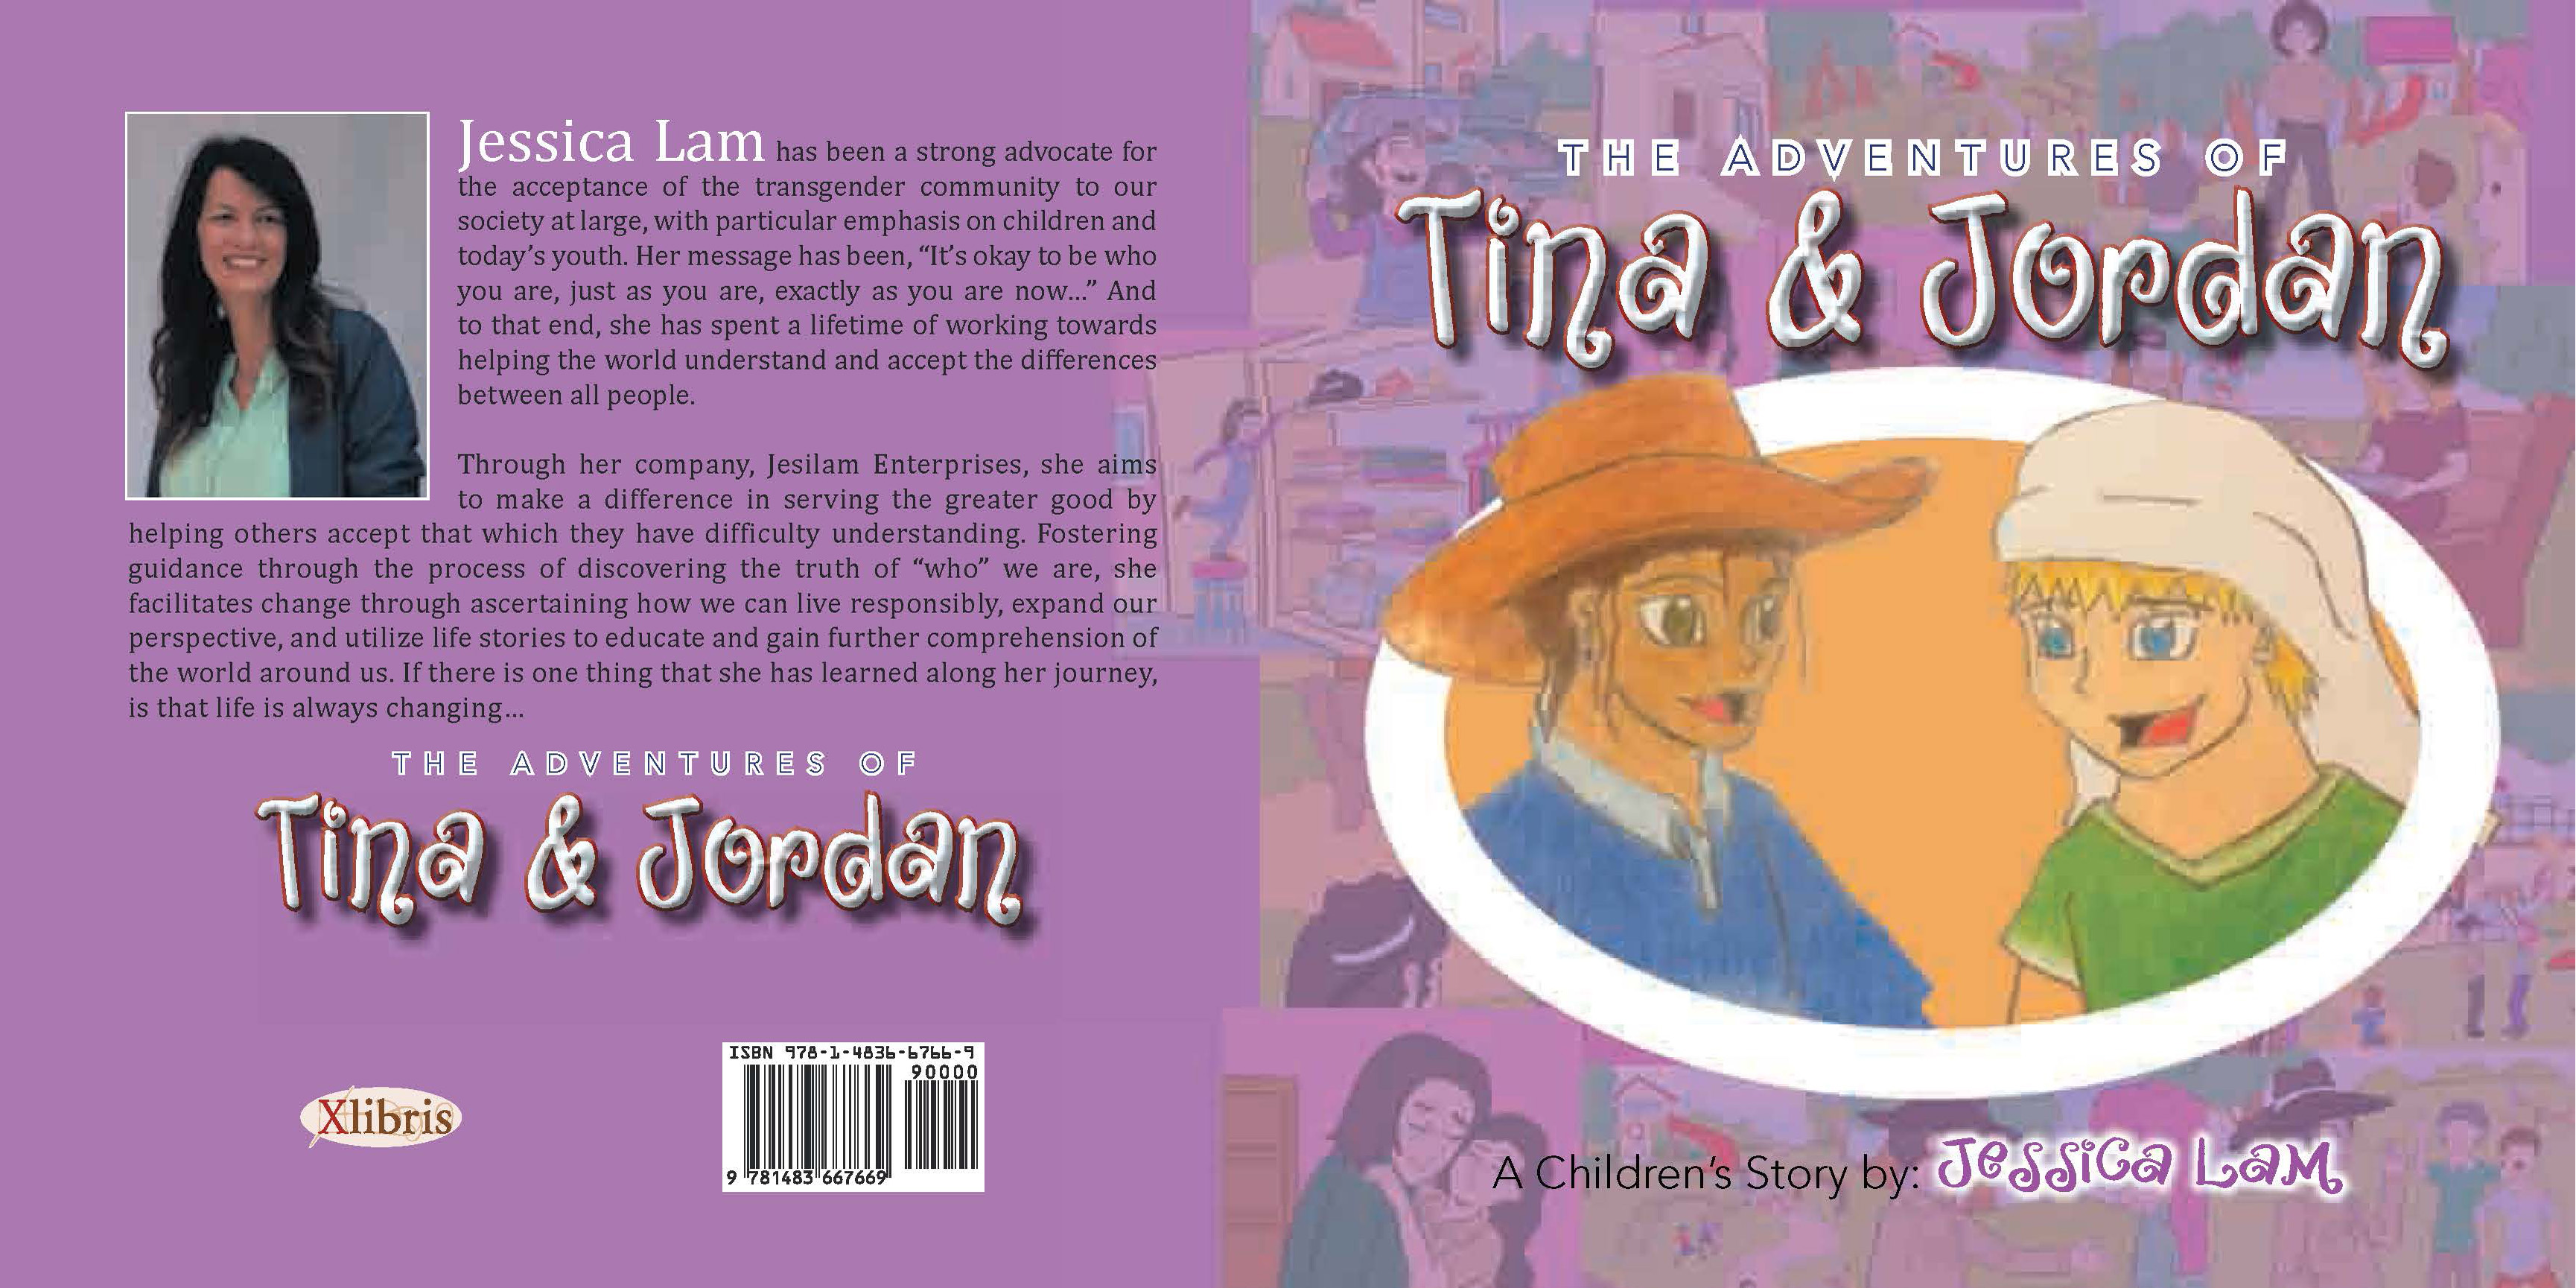 Adventures-Tina-Jordan-COVER